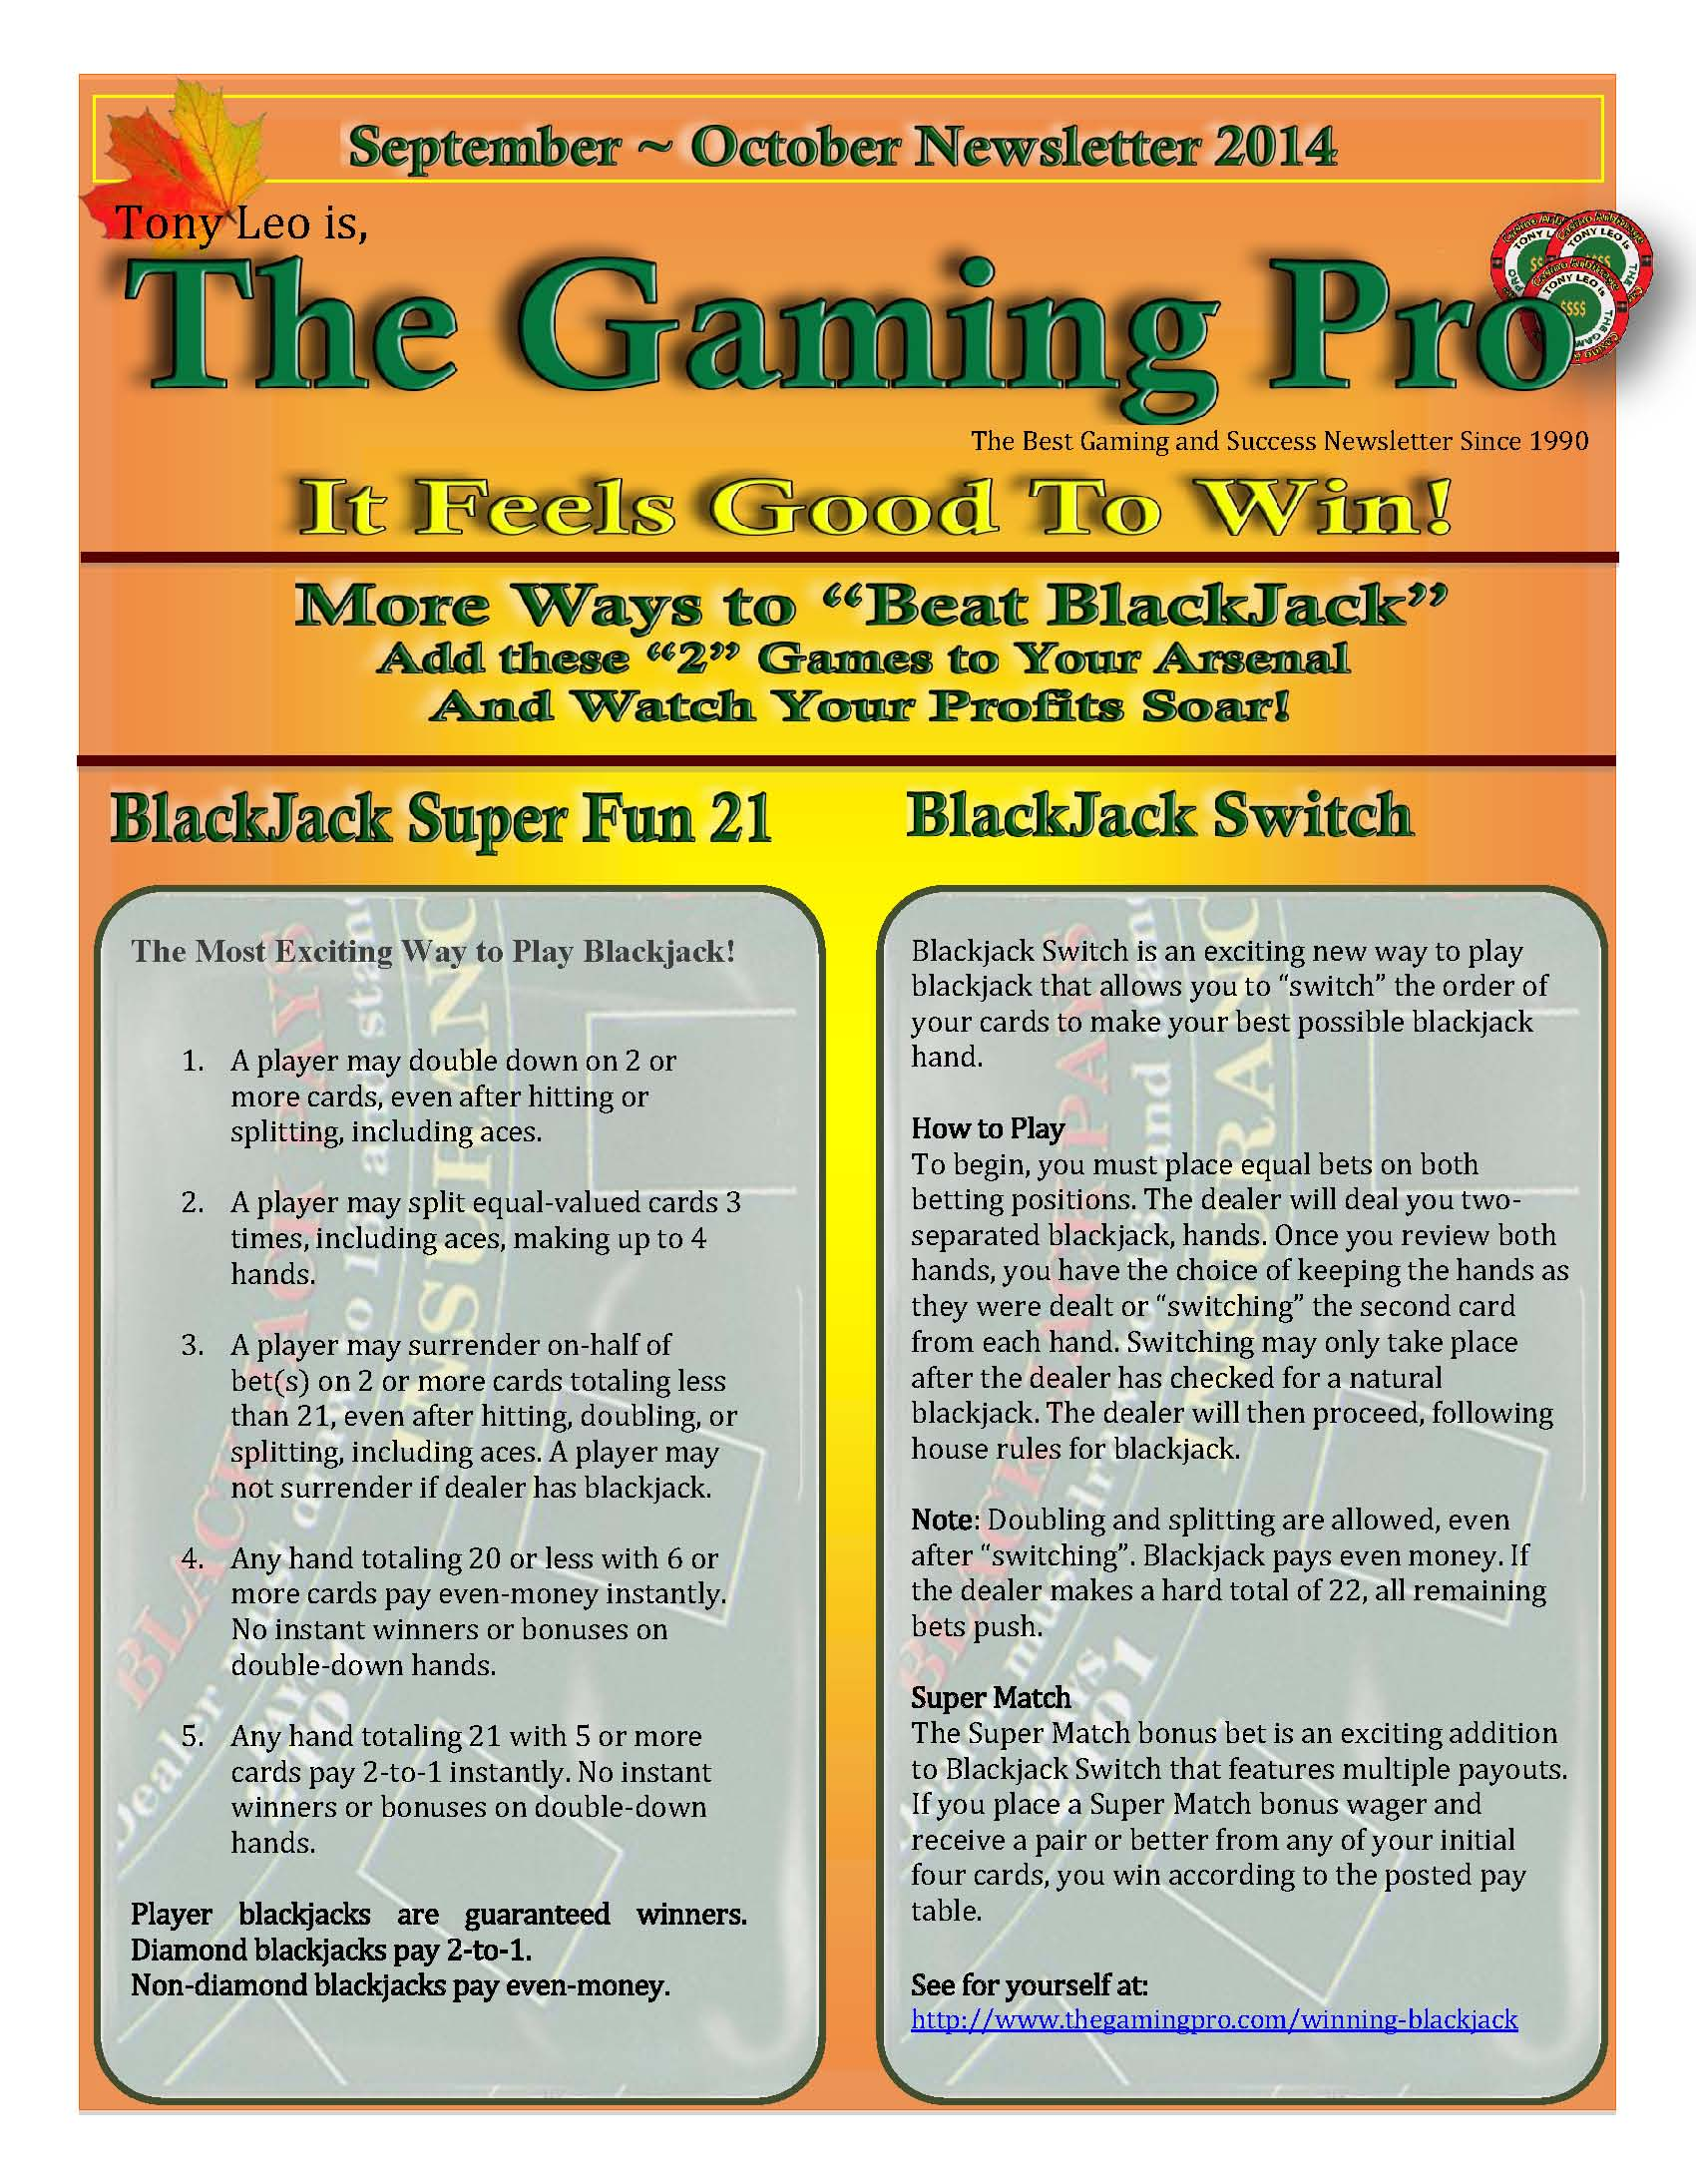 Sept Oct Newsletter 2014 The Gaming Pro 3 Way Switch Both Down Page 1